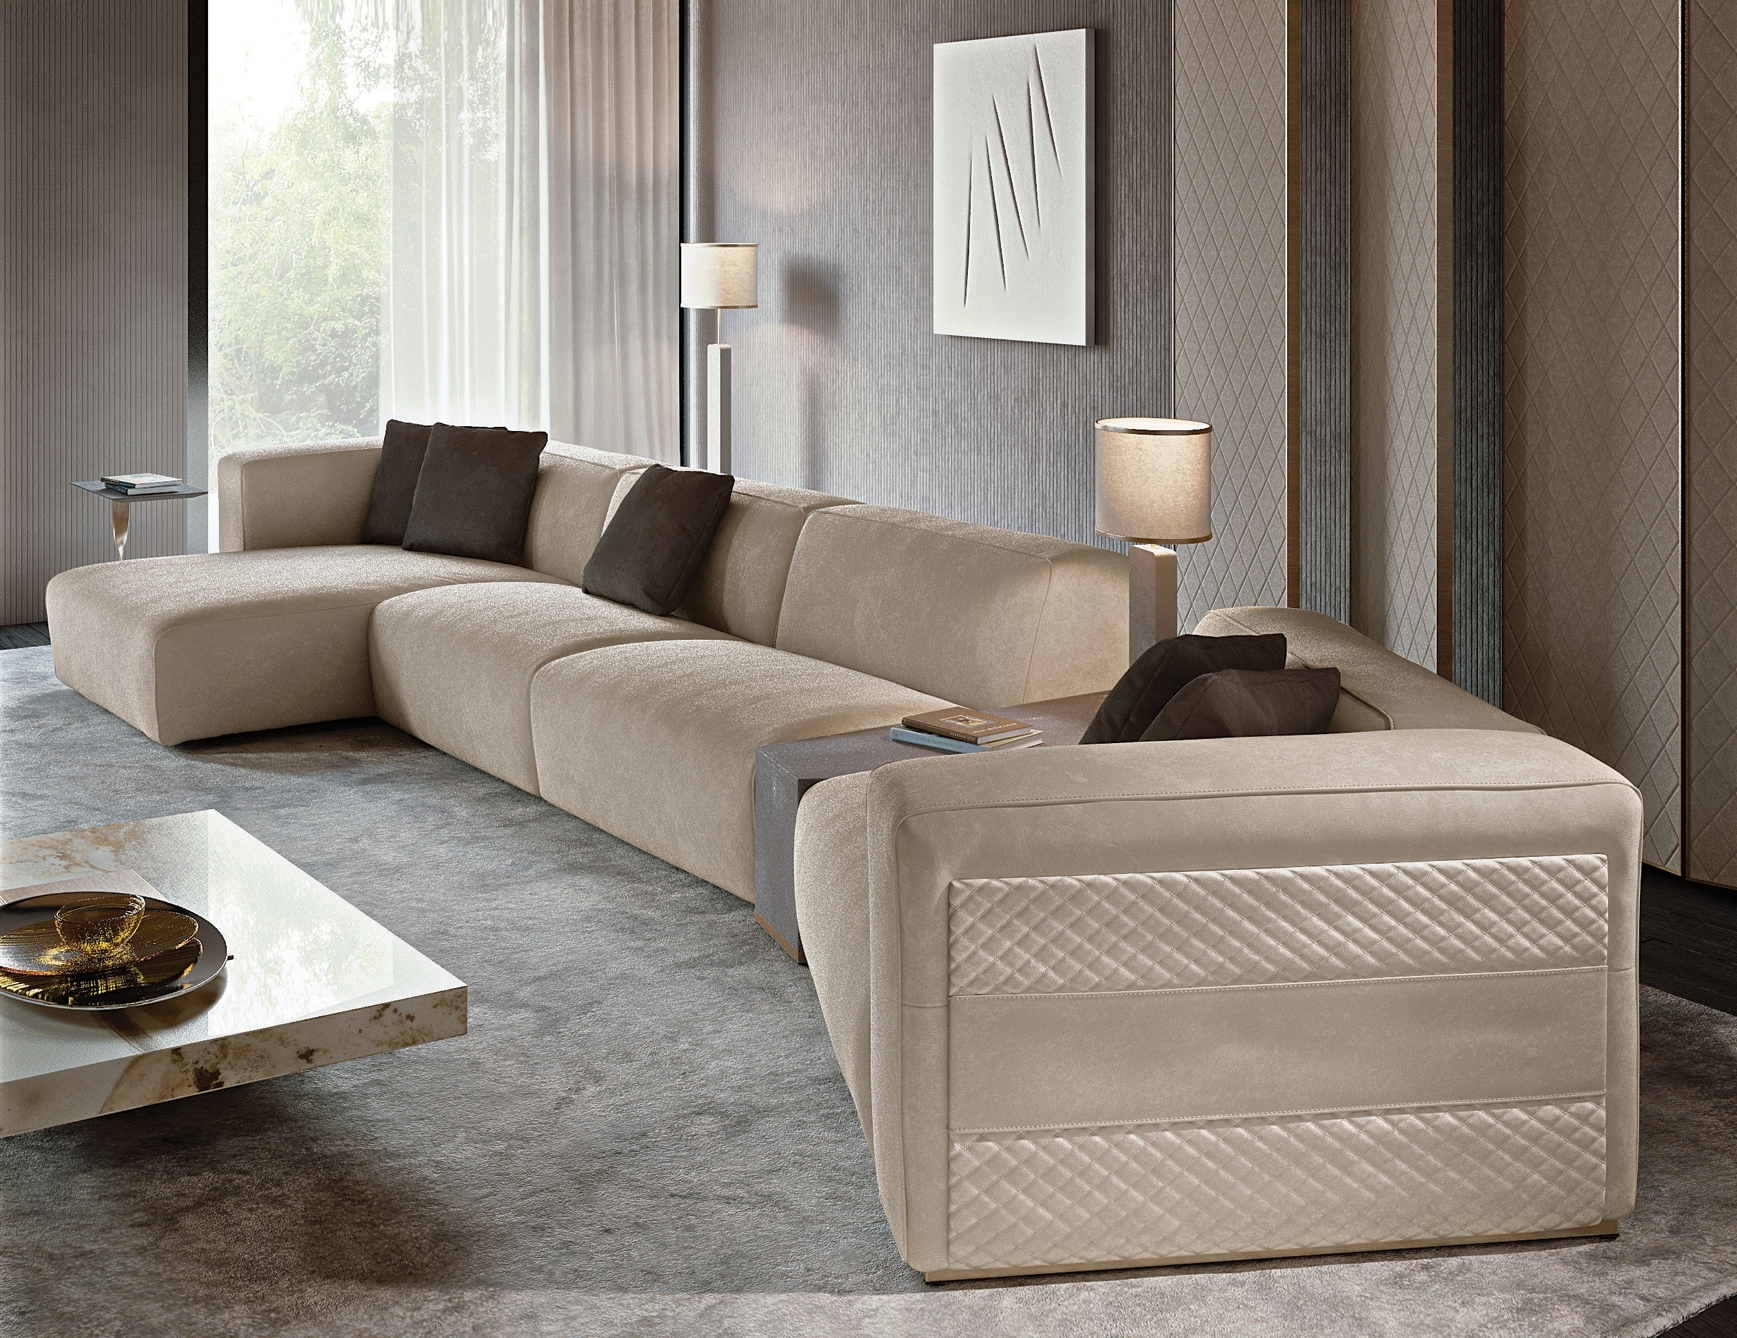 Nella Vetrina Rugiano Freud Sectional Sofa In Suede Inside 2017 High End Sofas (View 12 of 15)